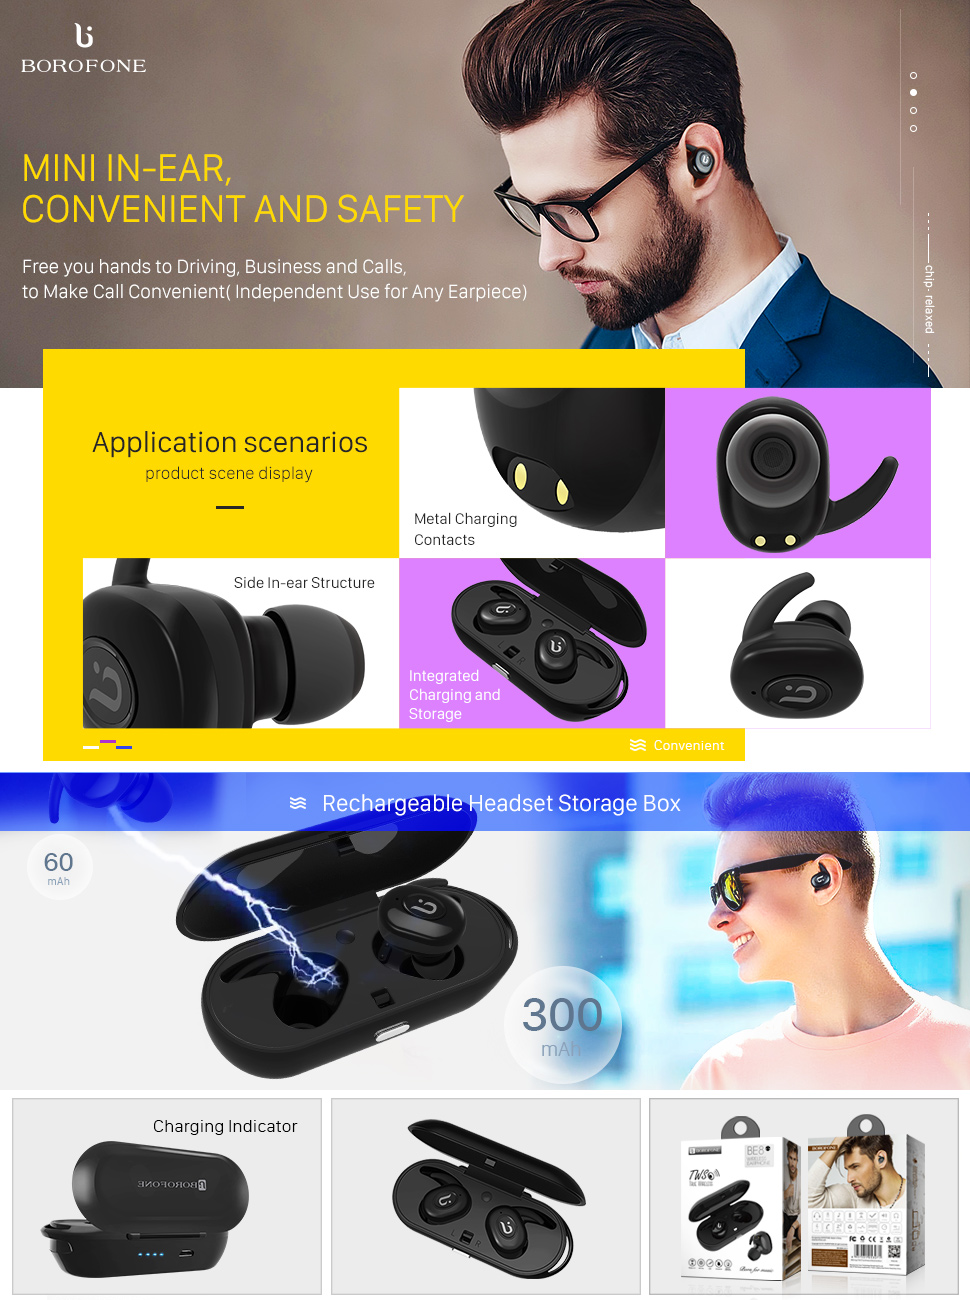 49b5c955f0f True Wireless Stereo: Completely True Wireless Earbuds, no wires to get in  the way. Most freedom. Bluetooth V4.1 + CSR: Ensure the fast speed  transmission ...